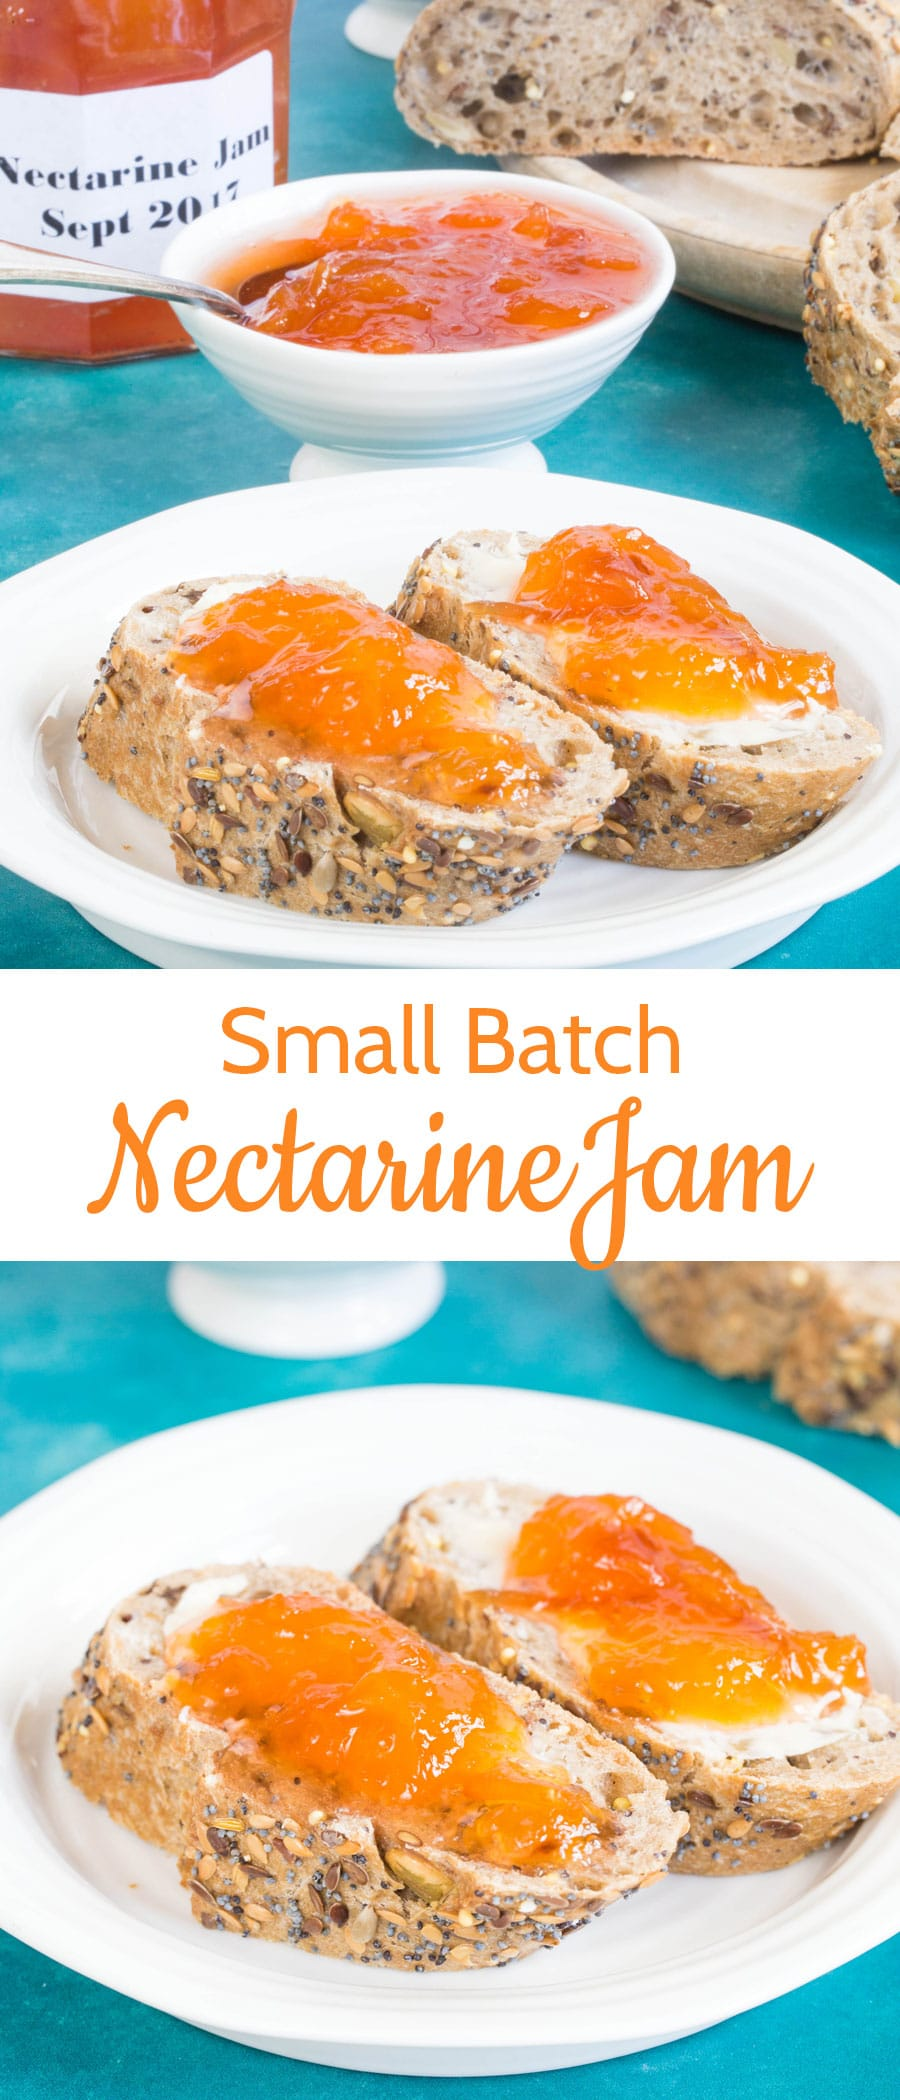 Small batch nectarine jam bursts with delicious flavour; it's quick and easy to make, with no need for preserving pans or specialist equipment. Three ingredients, no added pectin.